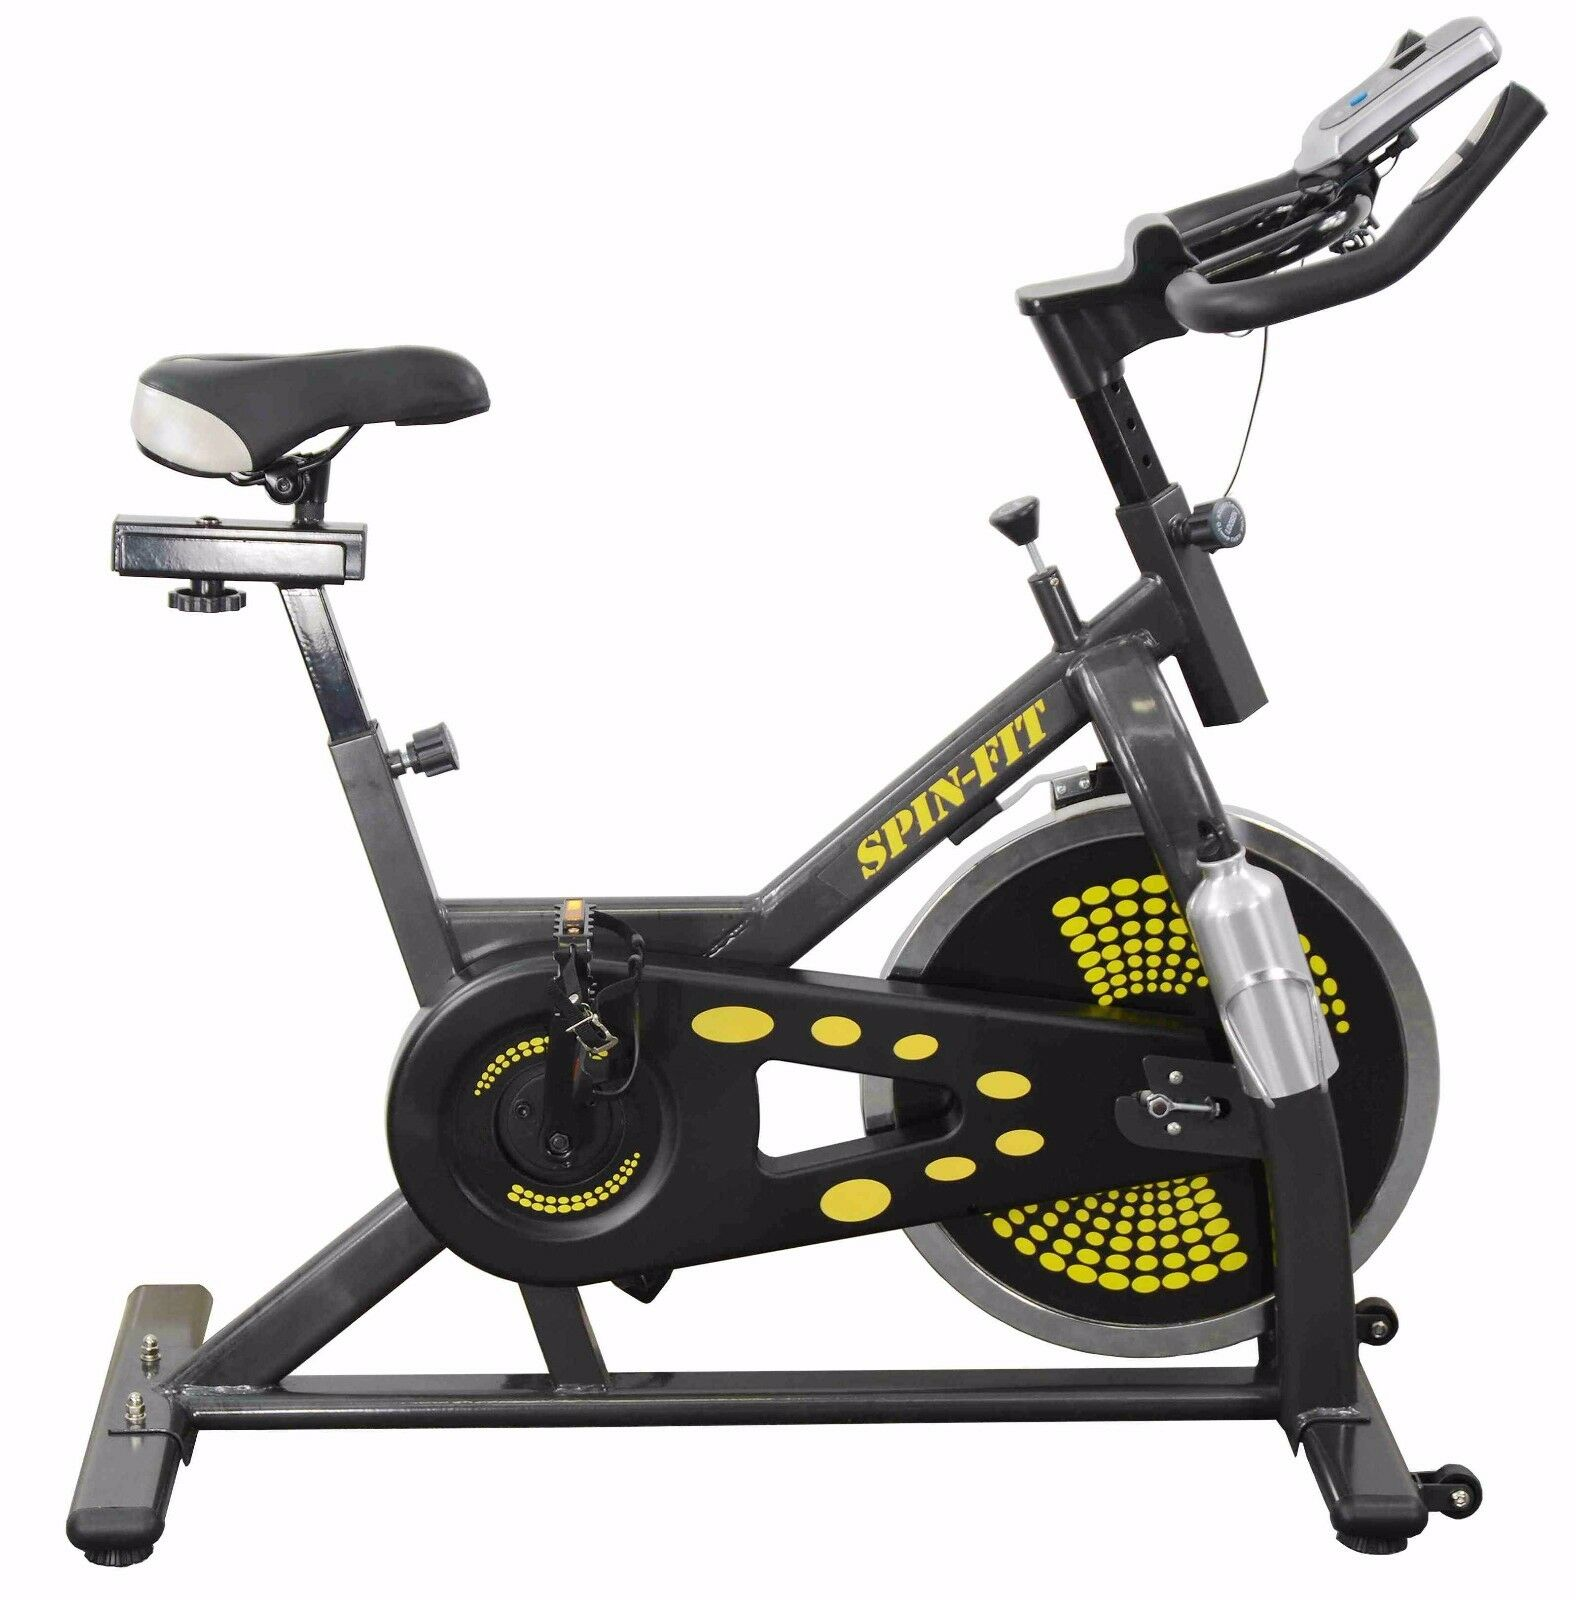 exercise bike fitness gym spin exercise training cycle ebay. Black Bedroom Furniture Sets. Home Design Ideas